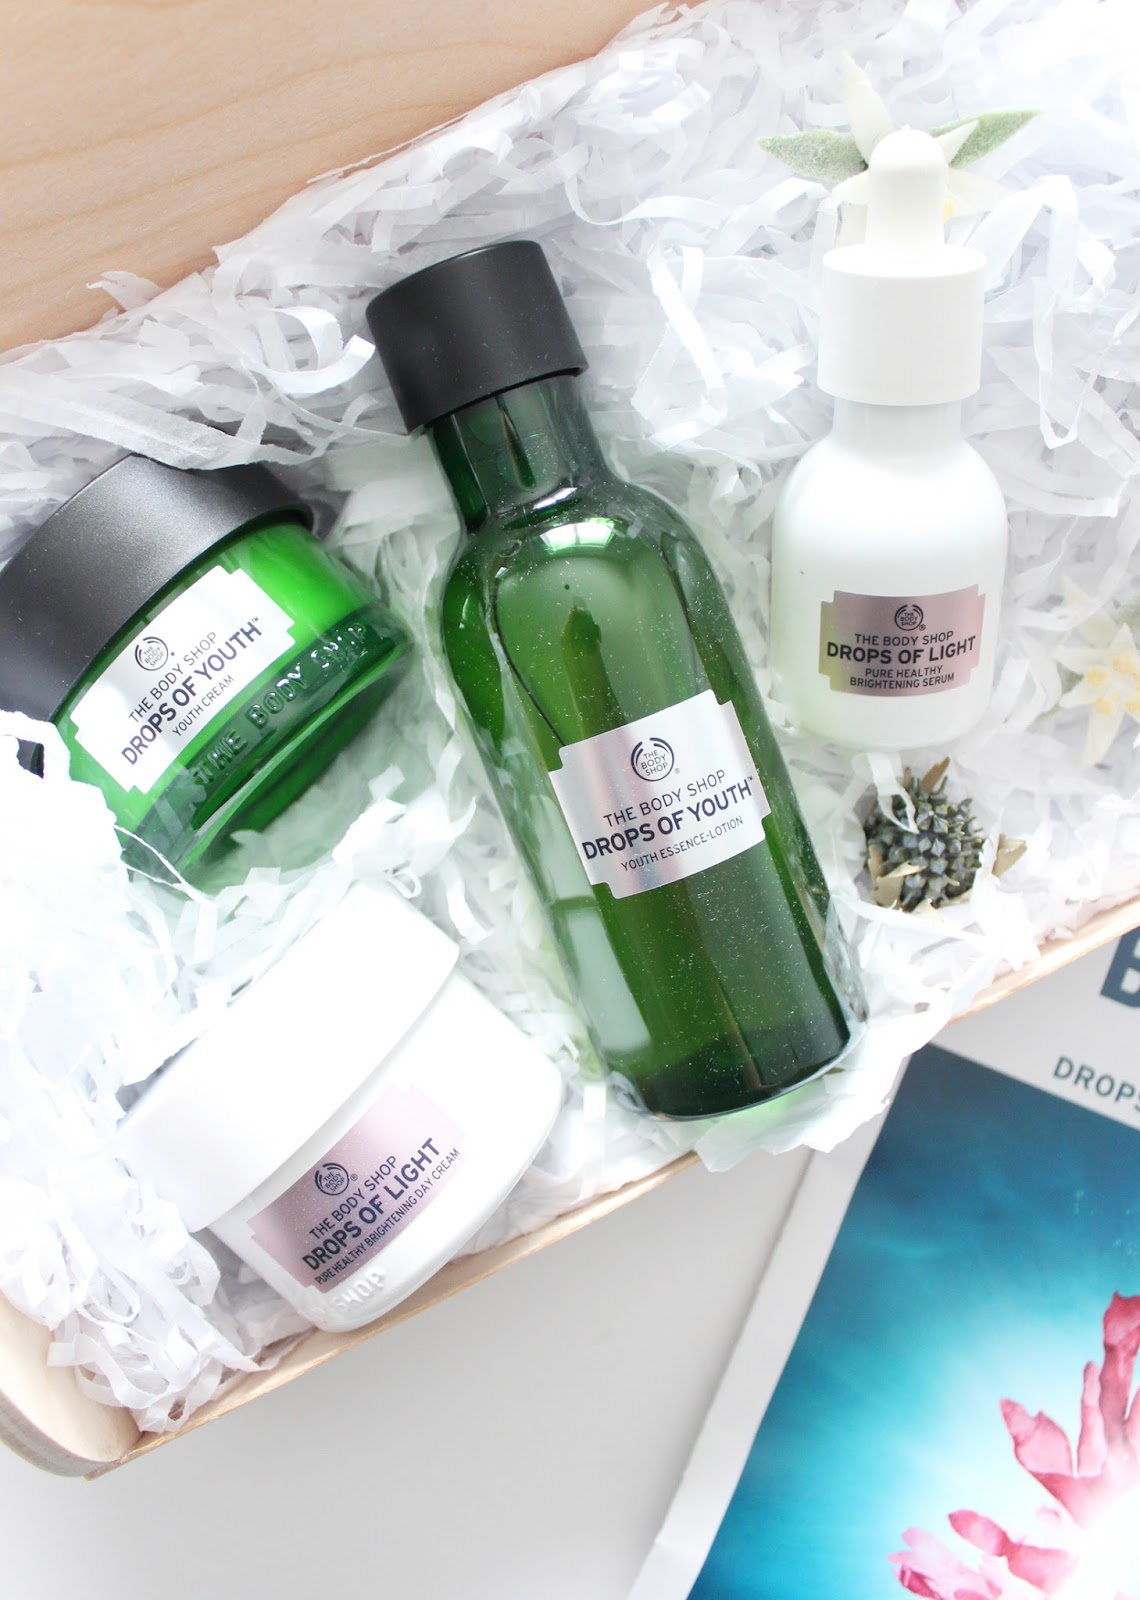 THE BODY SHOP | Drops of Light + Drops of Youth Range - CassandraMyee